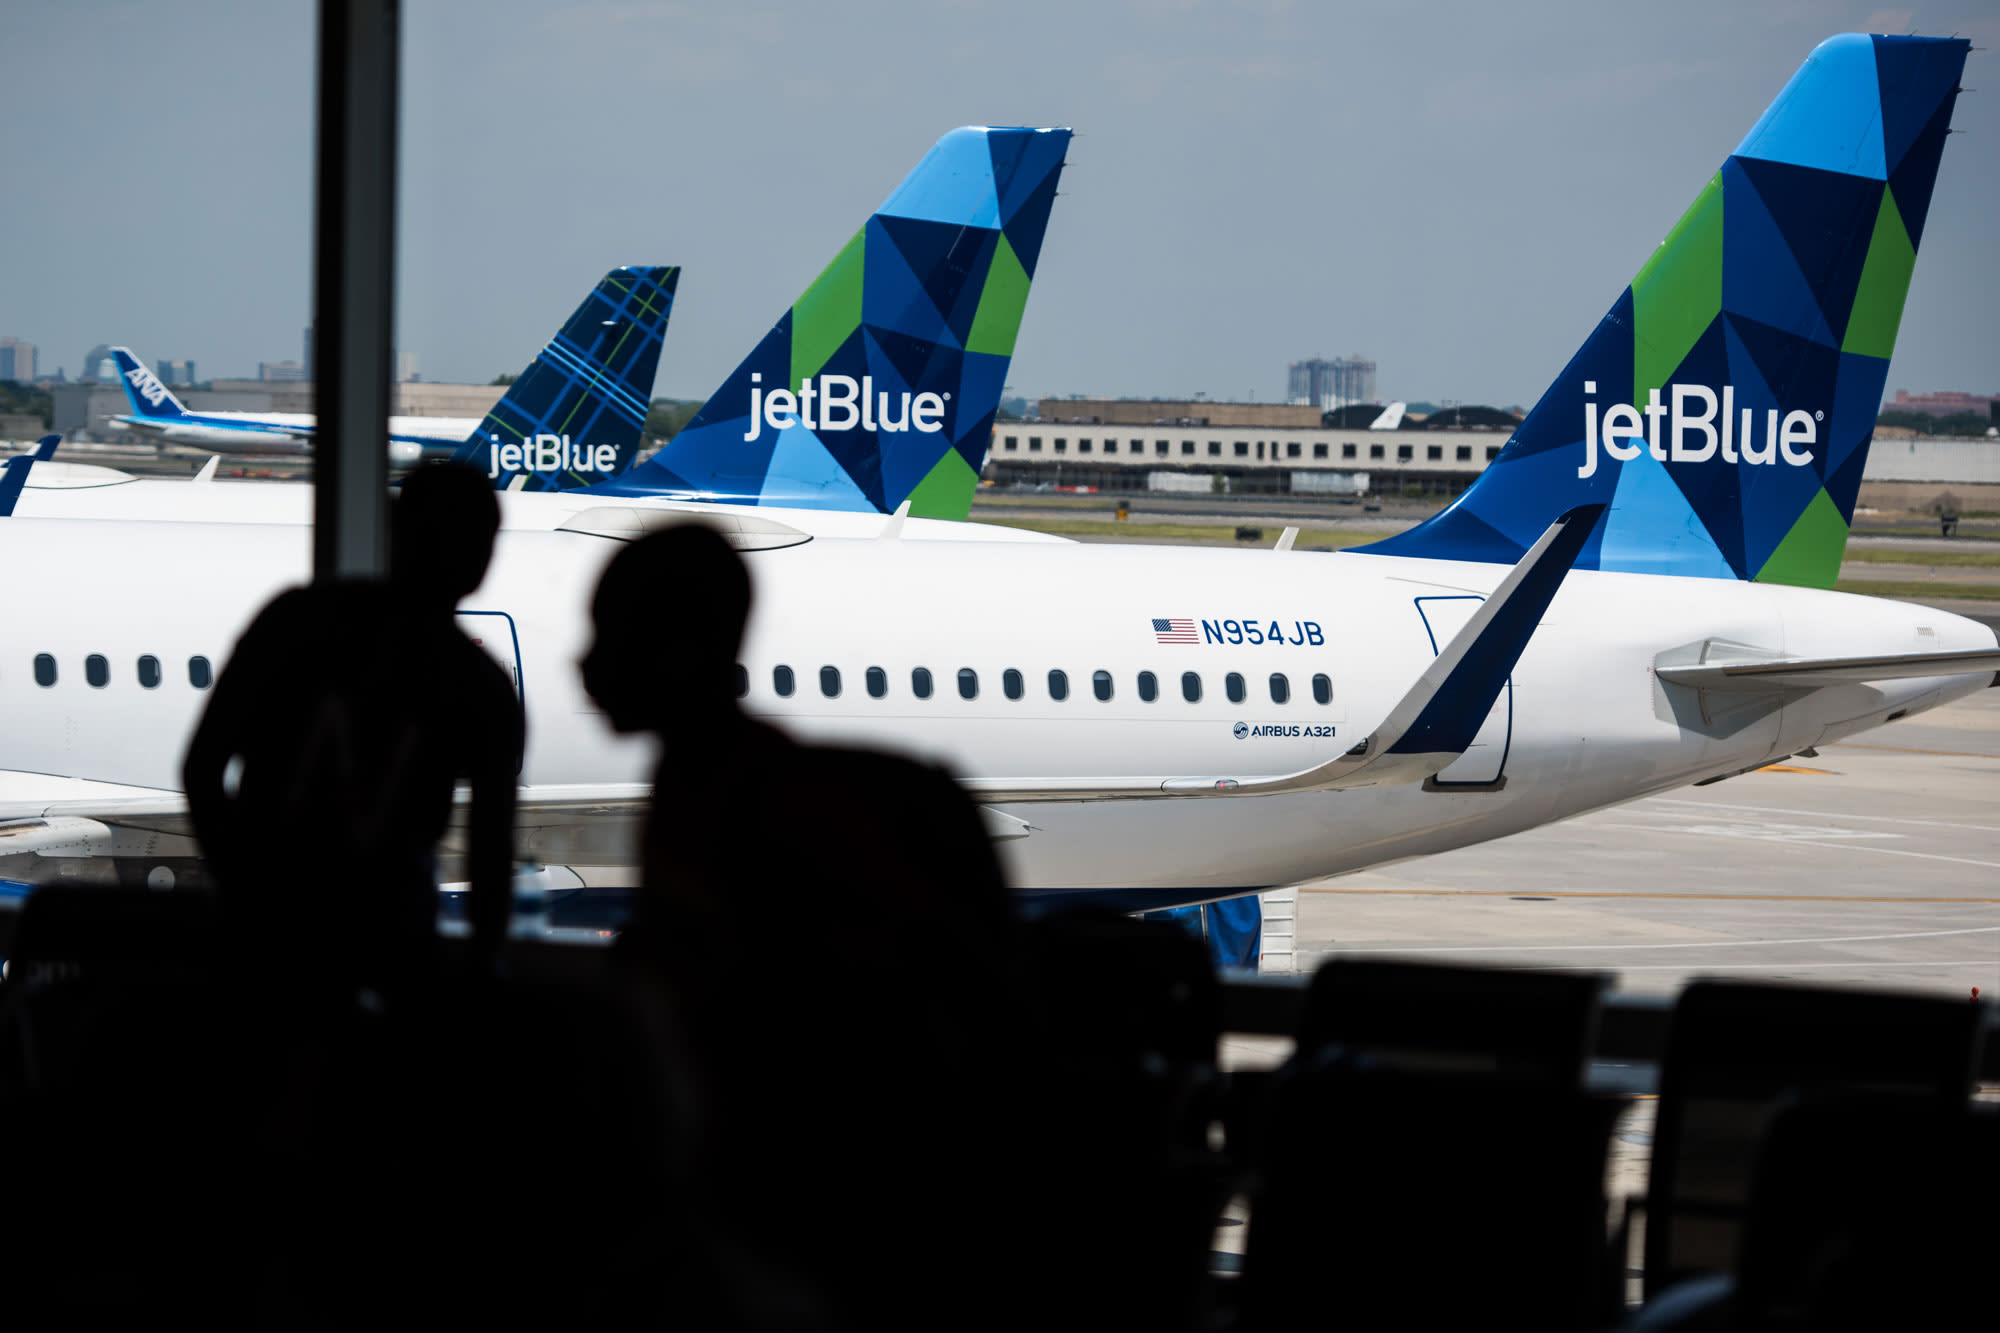 JetBlue slashes flights by 80% from its New York-area home as coronavirus spreads